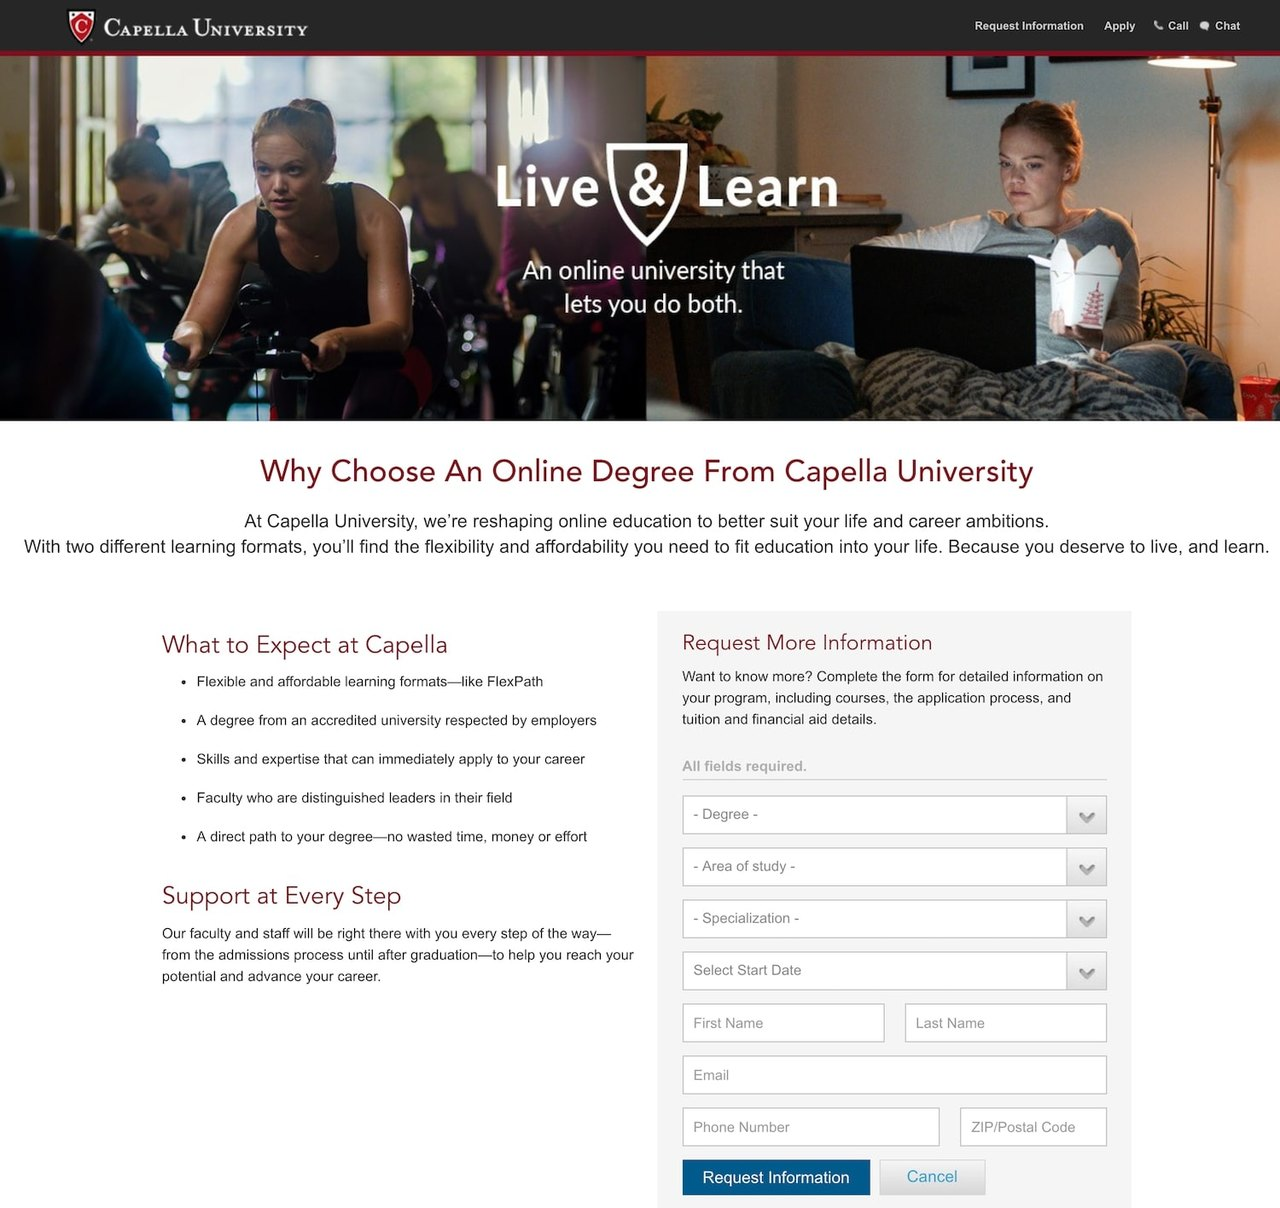 Capella University landing page example